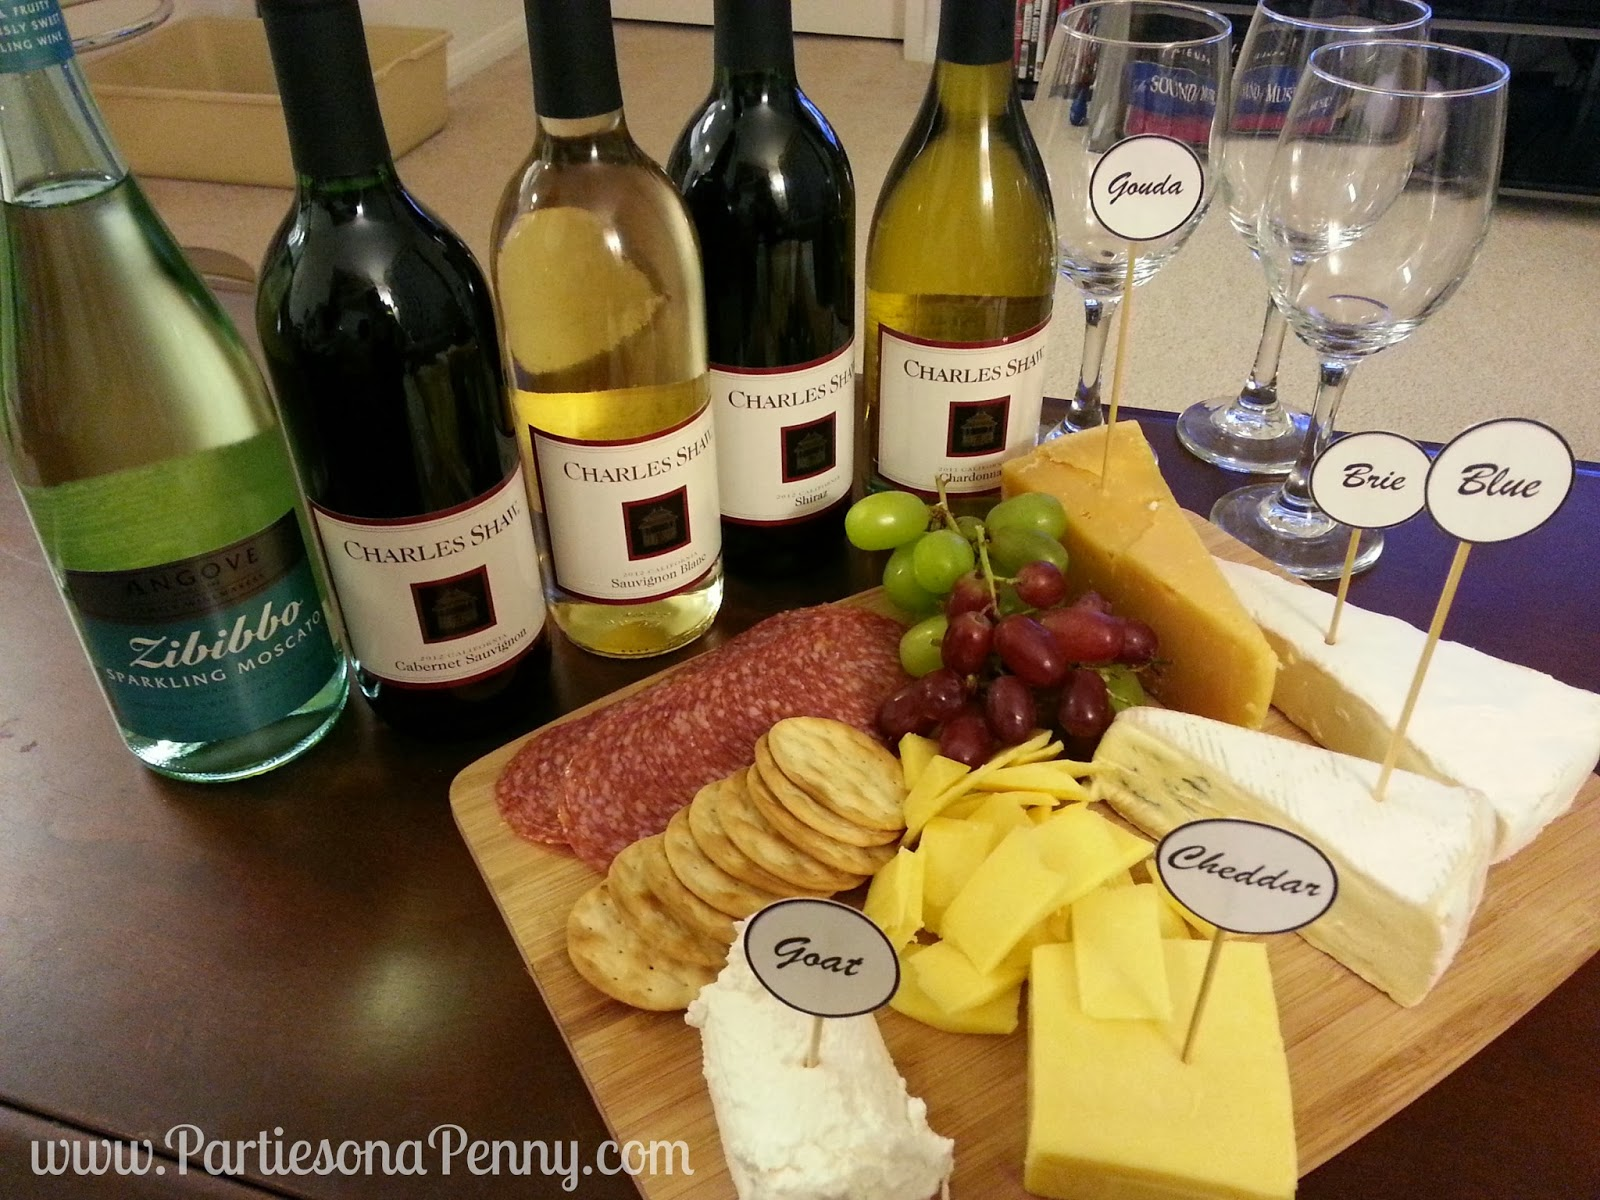 Cheese and Wine is a classic pairing and taste even better when consumed together. The key to pairing wine and cheese is marrying the texture acidity ... & Parties On A Penny: Wine and Cheese Pairing with Two Buck Chuck